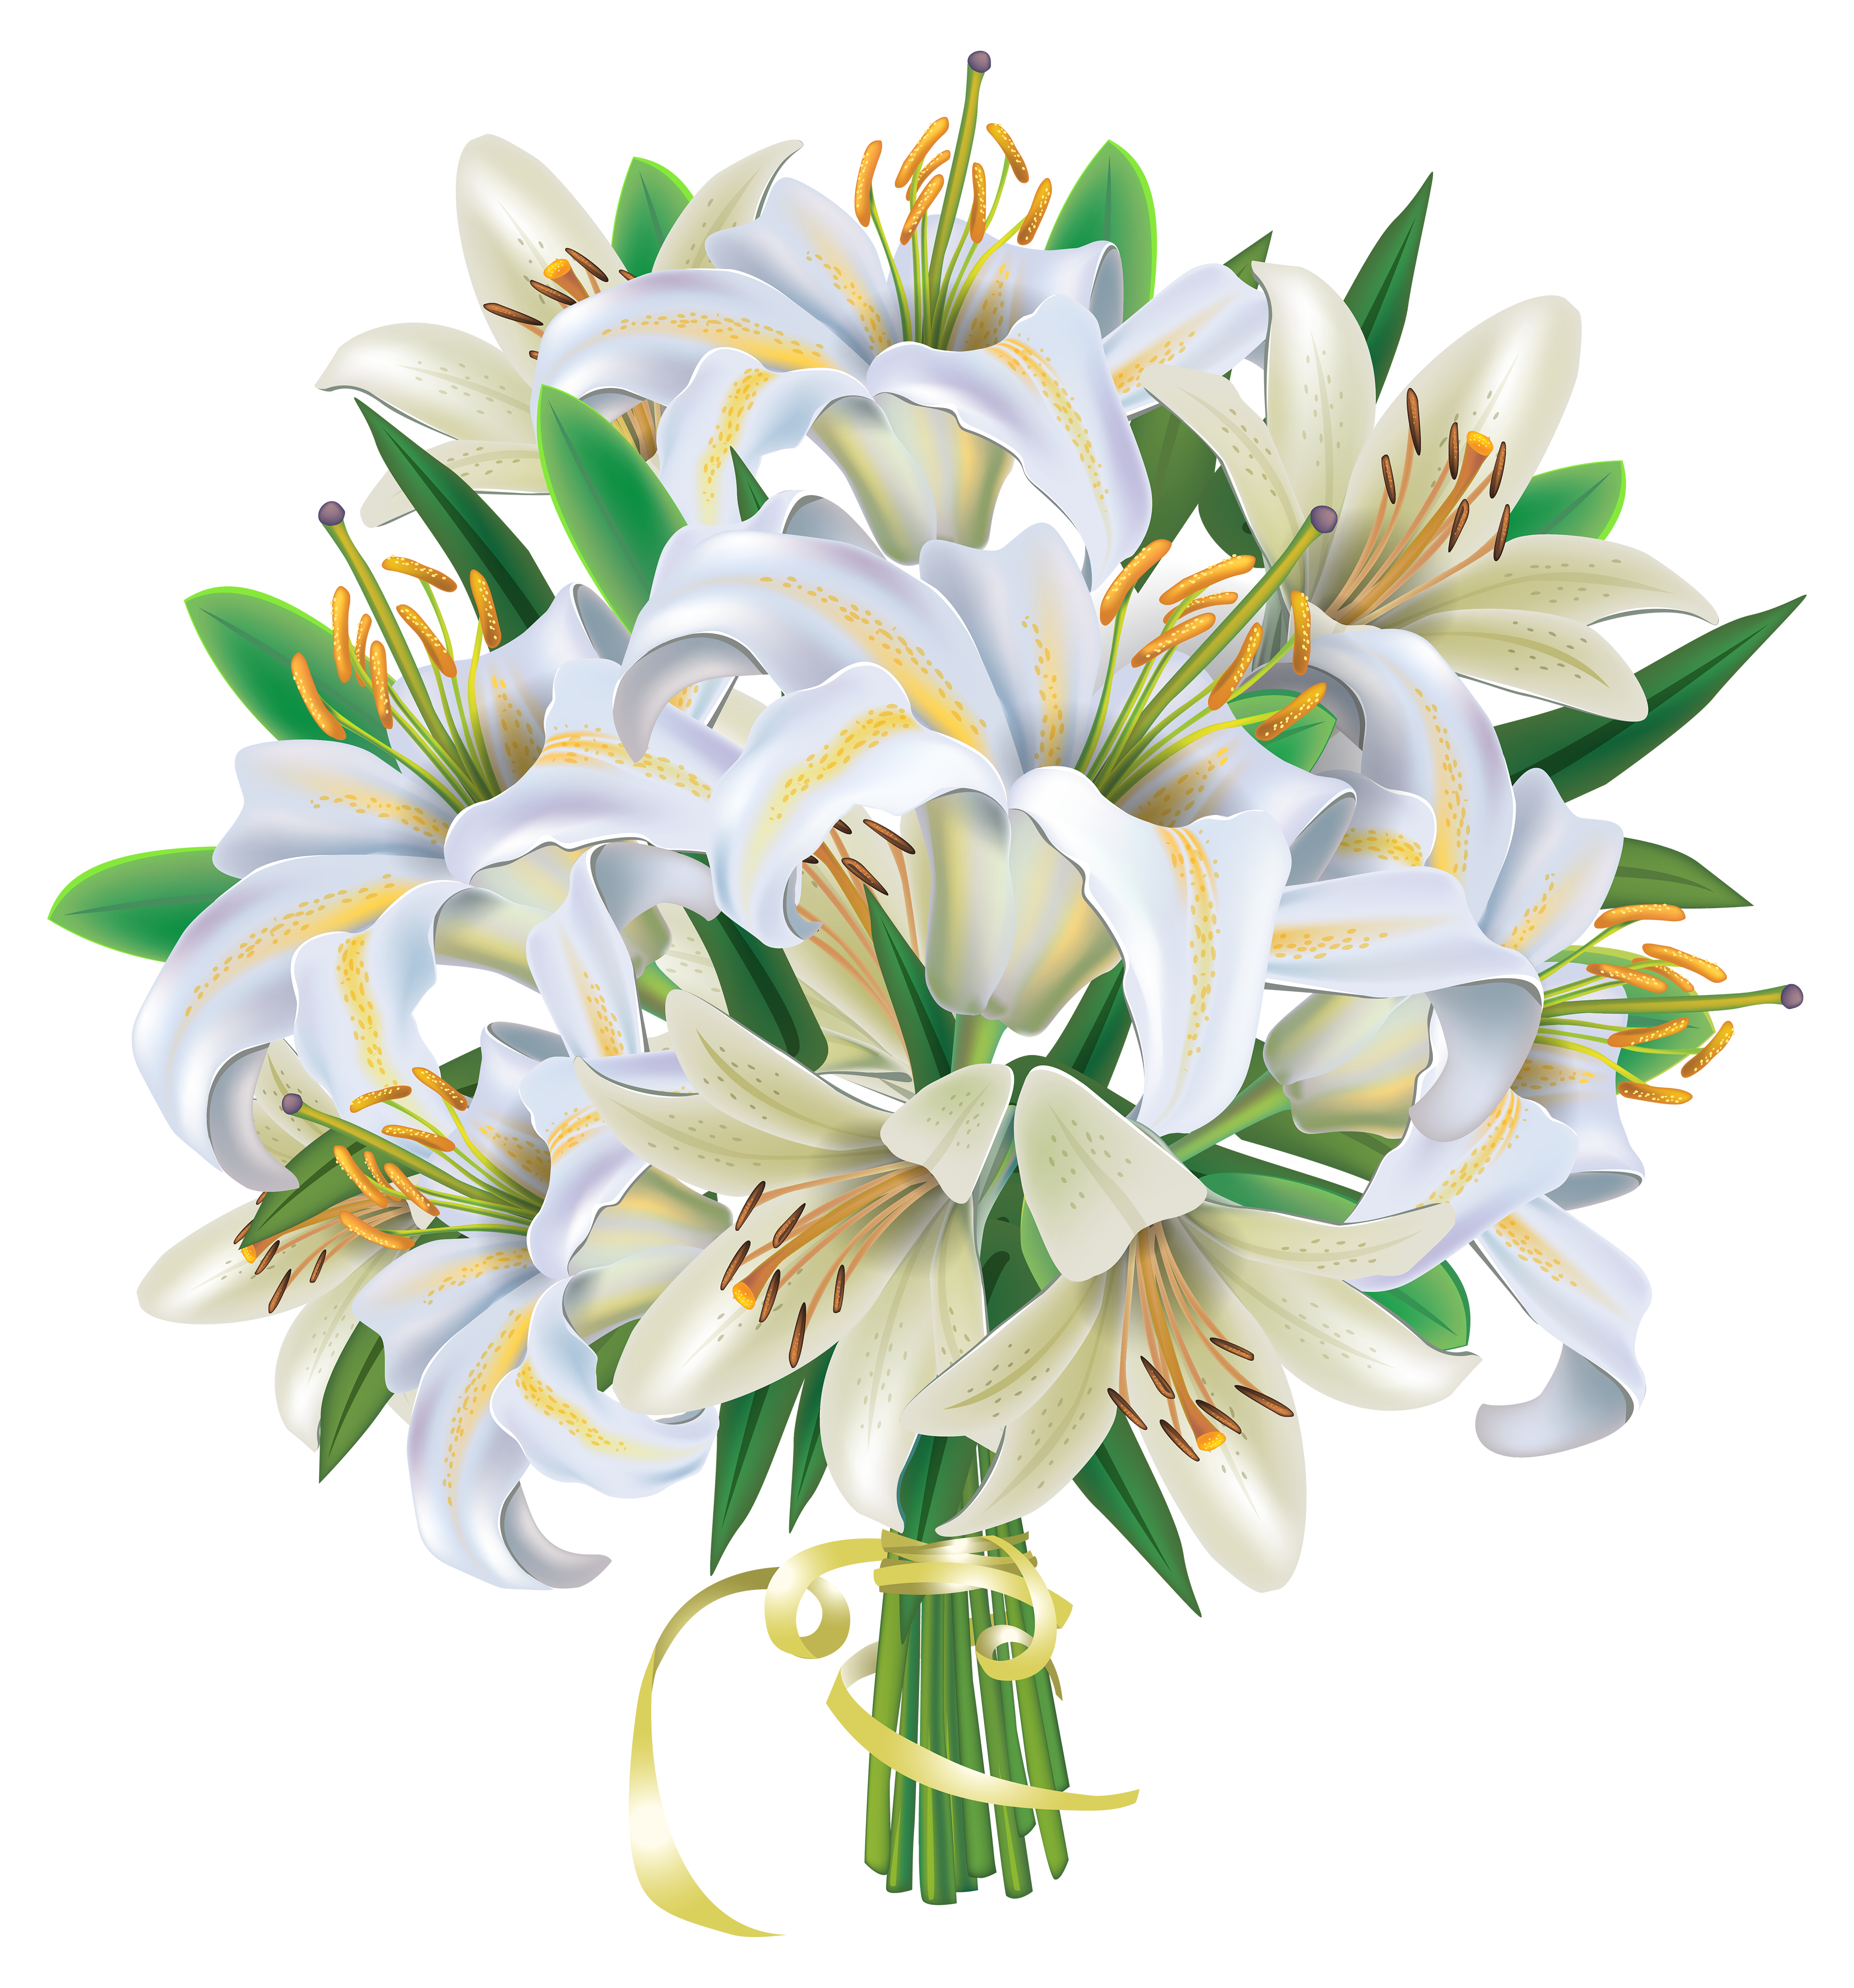 Roses and lilys clipart clip art freeuse stock White Lilies Flowers Bouquet PNG Clipart Image | Gallery ... clip art freeuse stock